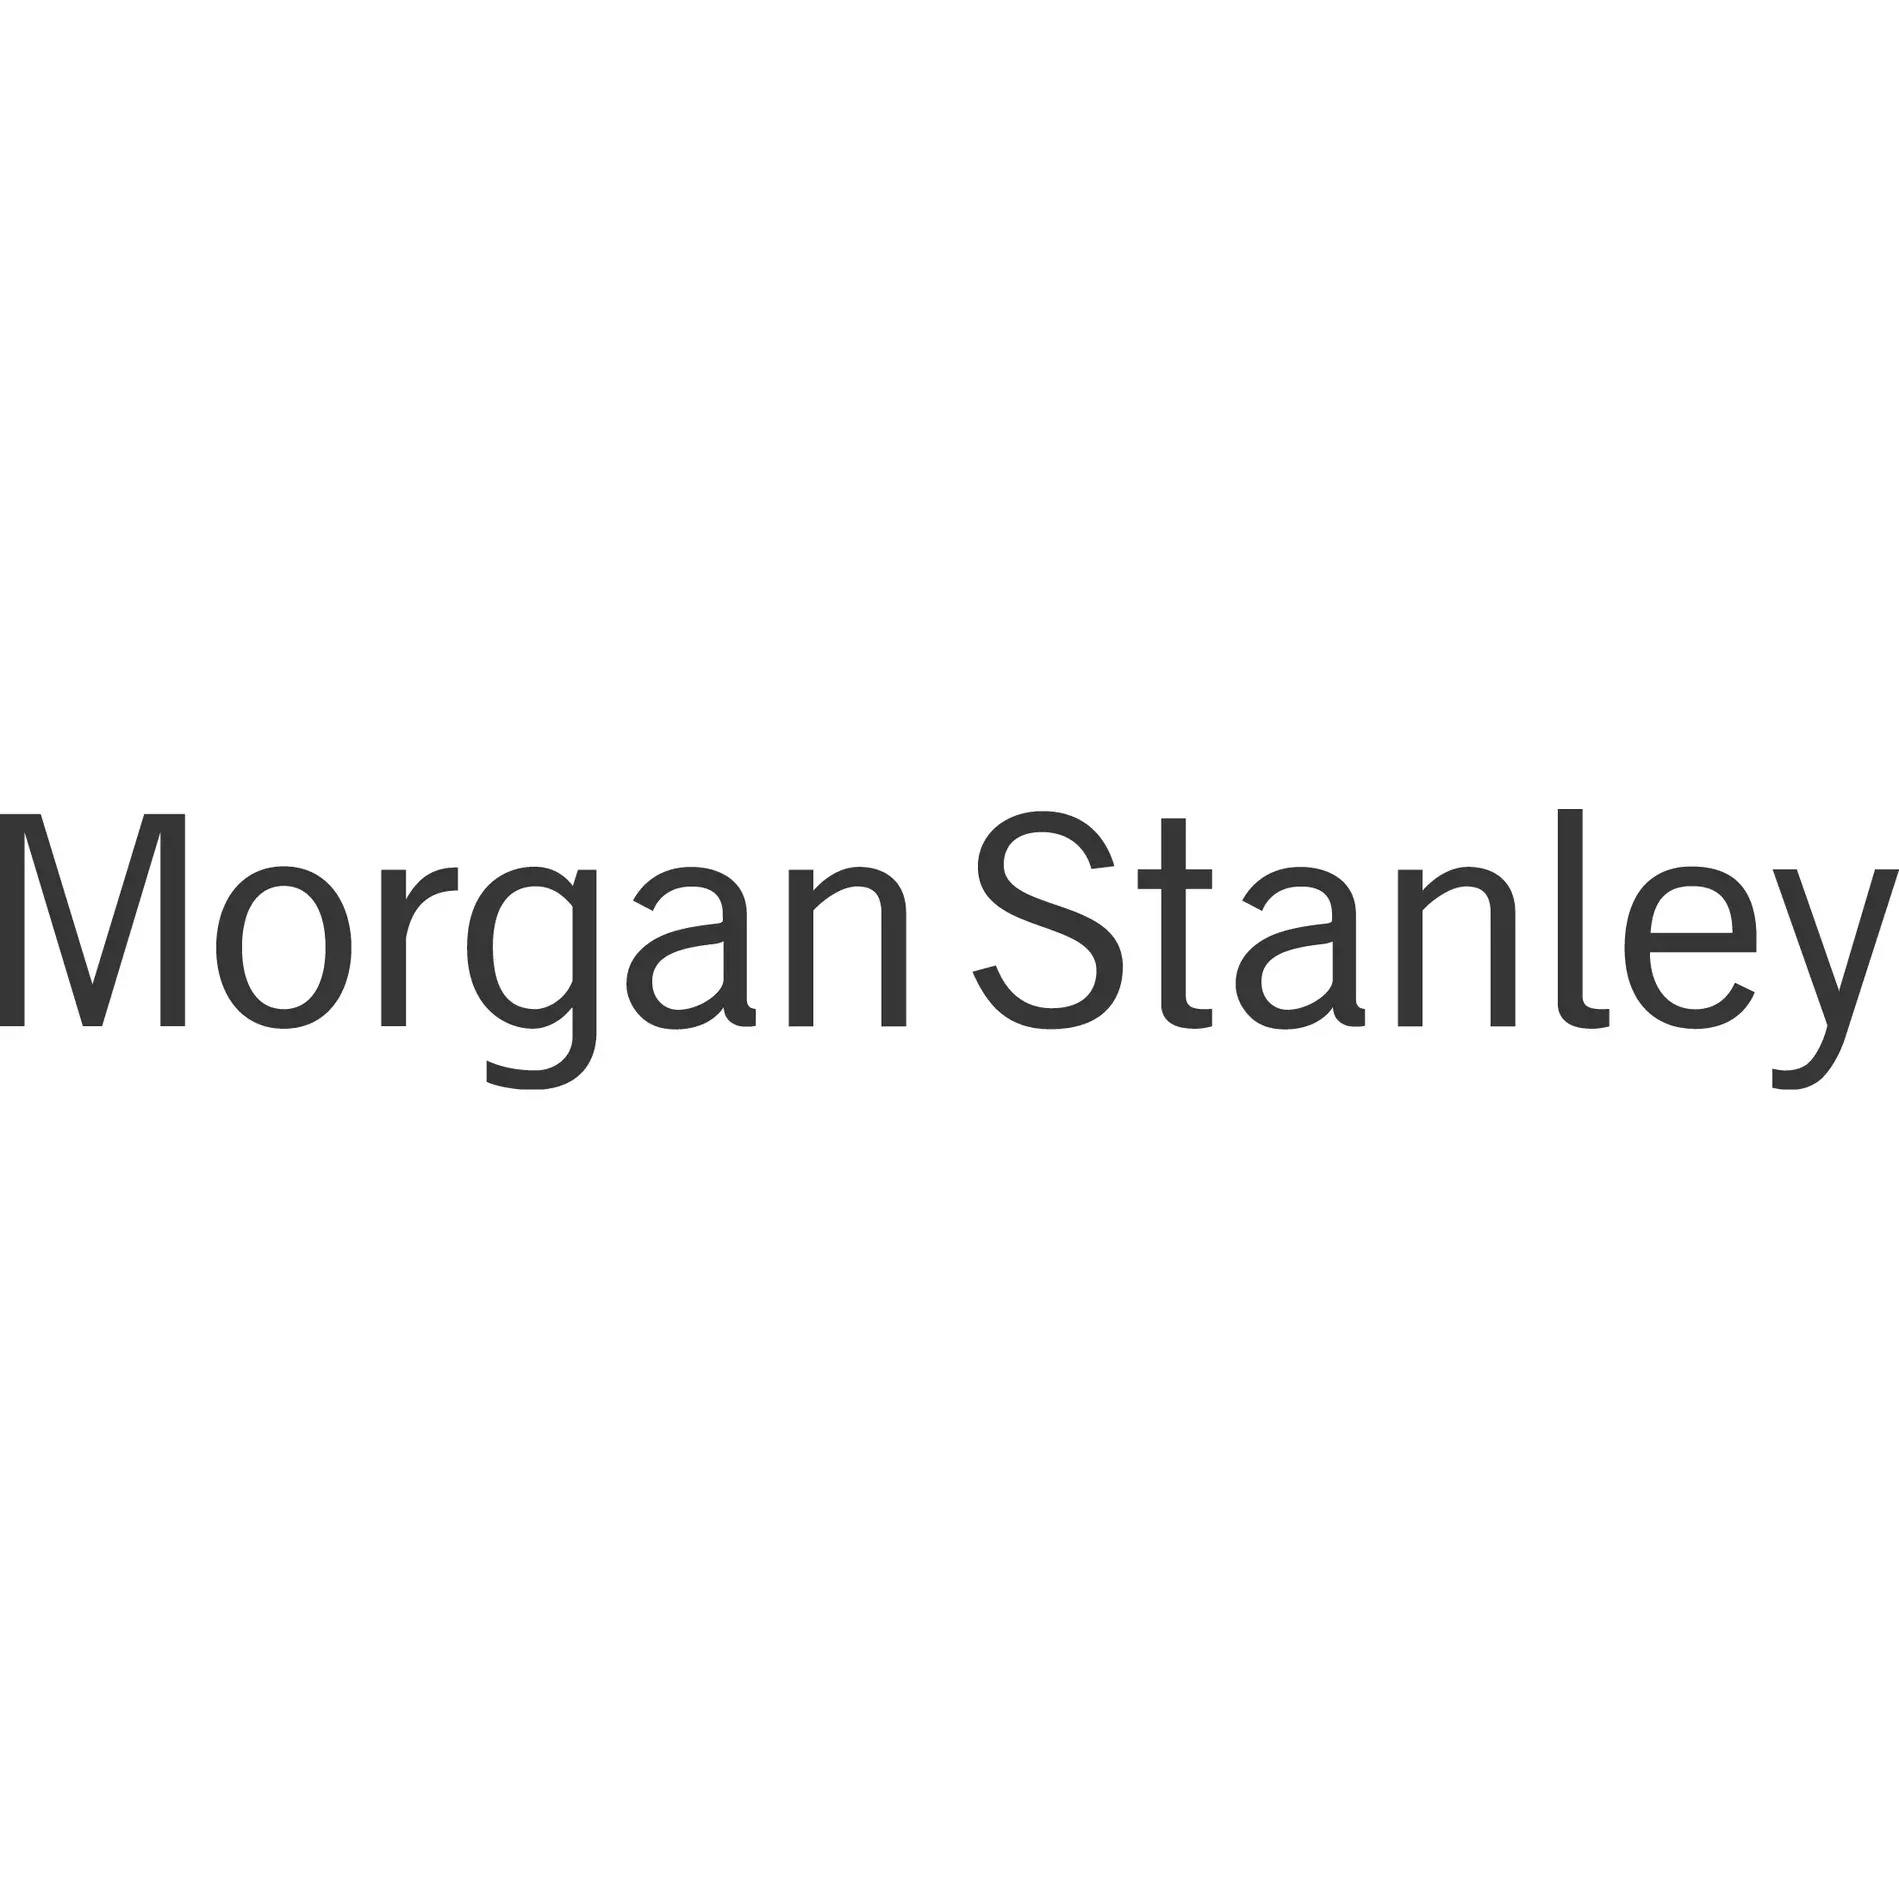 The Davis Neill Group - Morgan Stanley